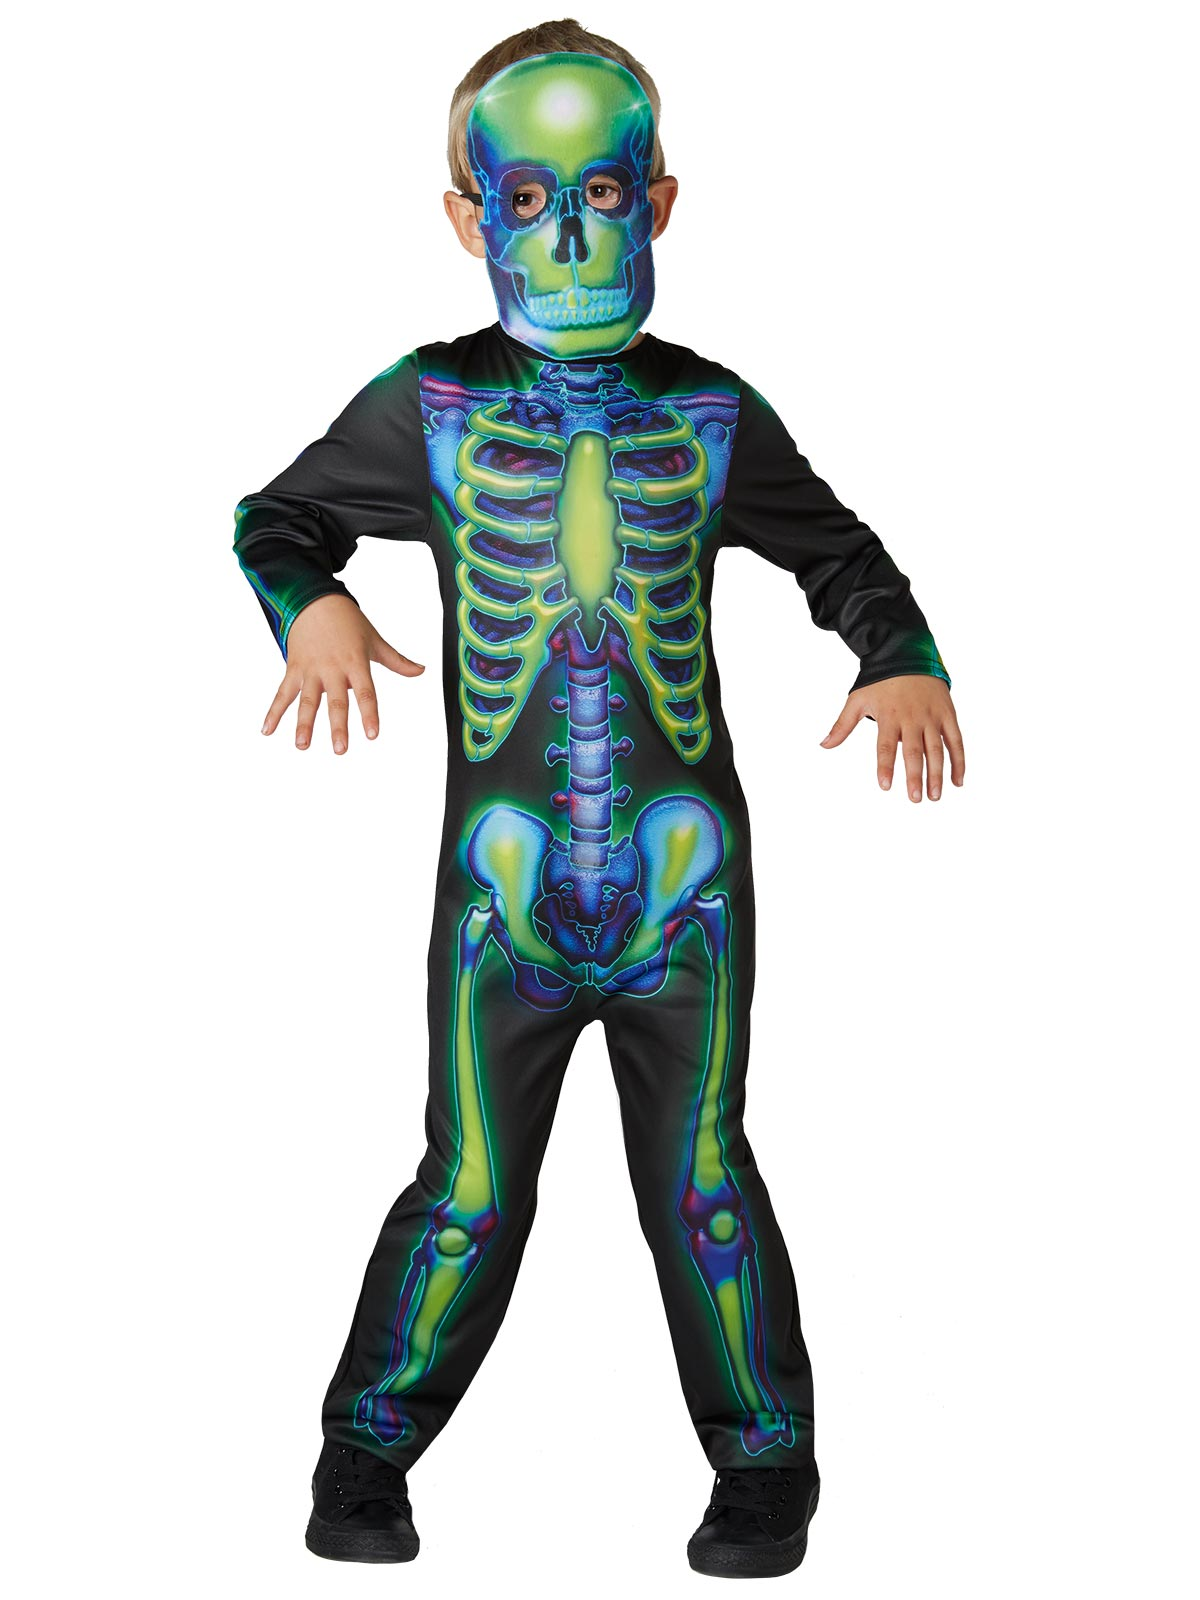 Neon Skeleton Glow In The Dark Child Costume - Buy